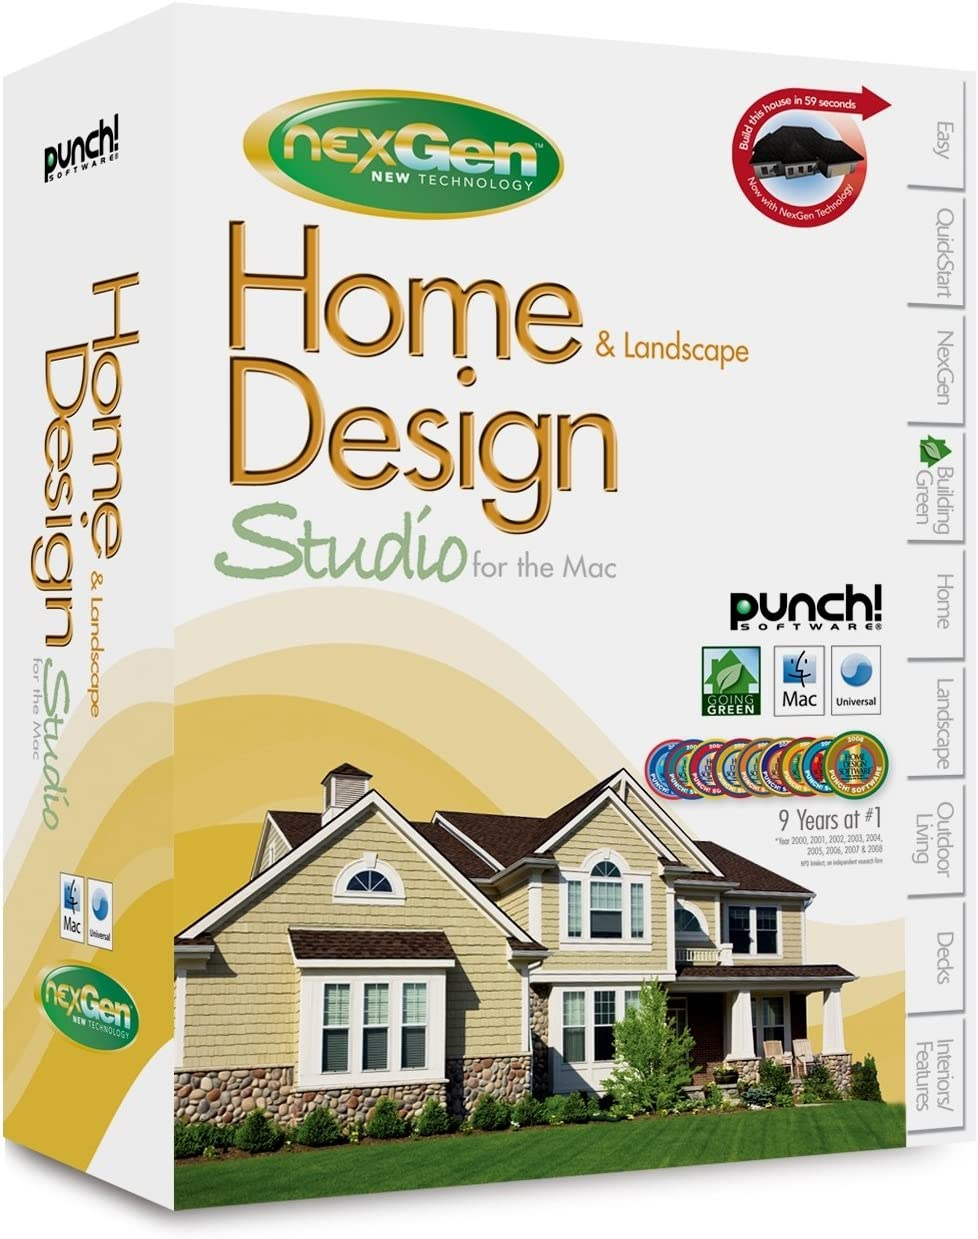 Amazon Com Punch Software Home Landscape Design Studio For The Mac With Nexgen Technology Old Version